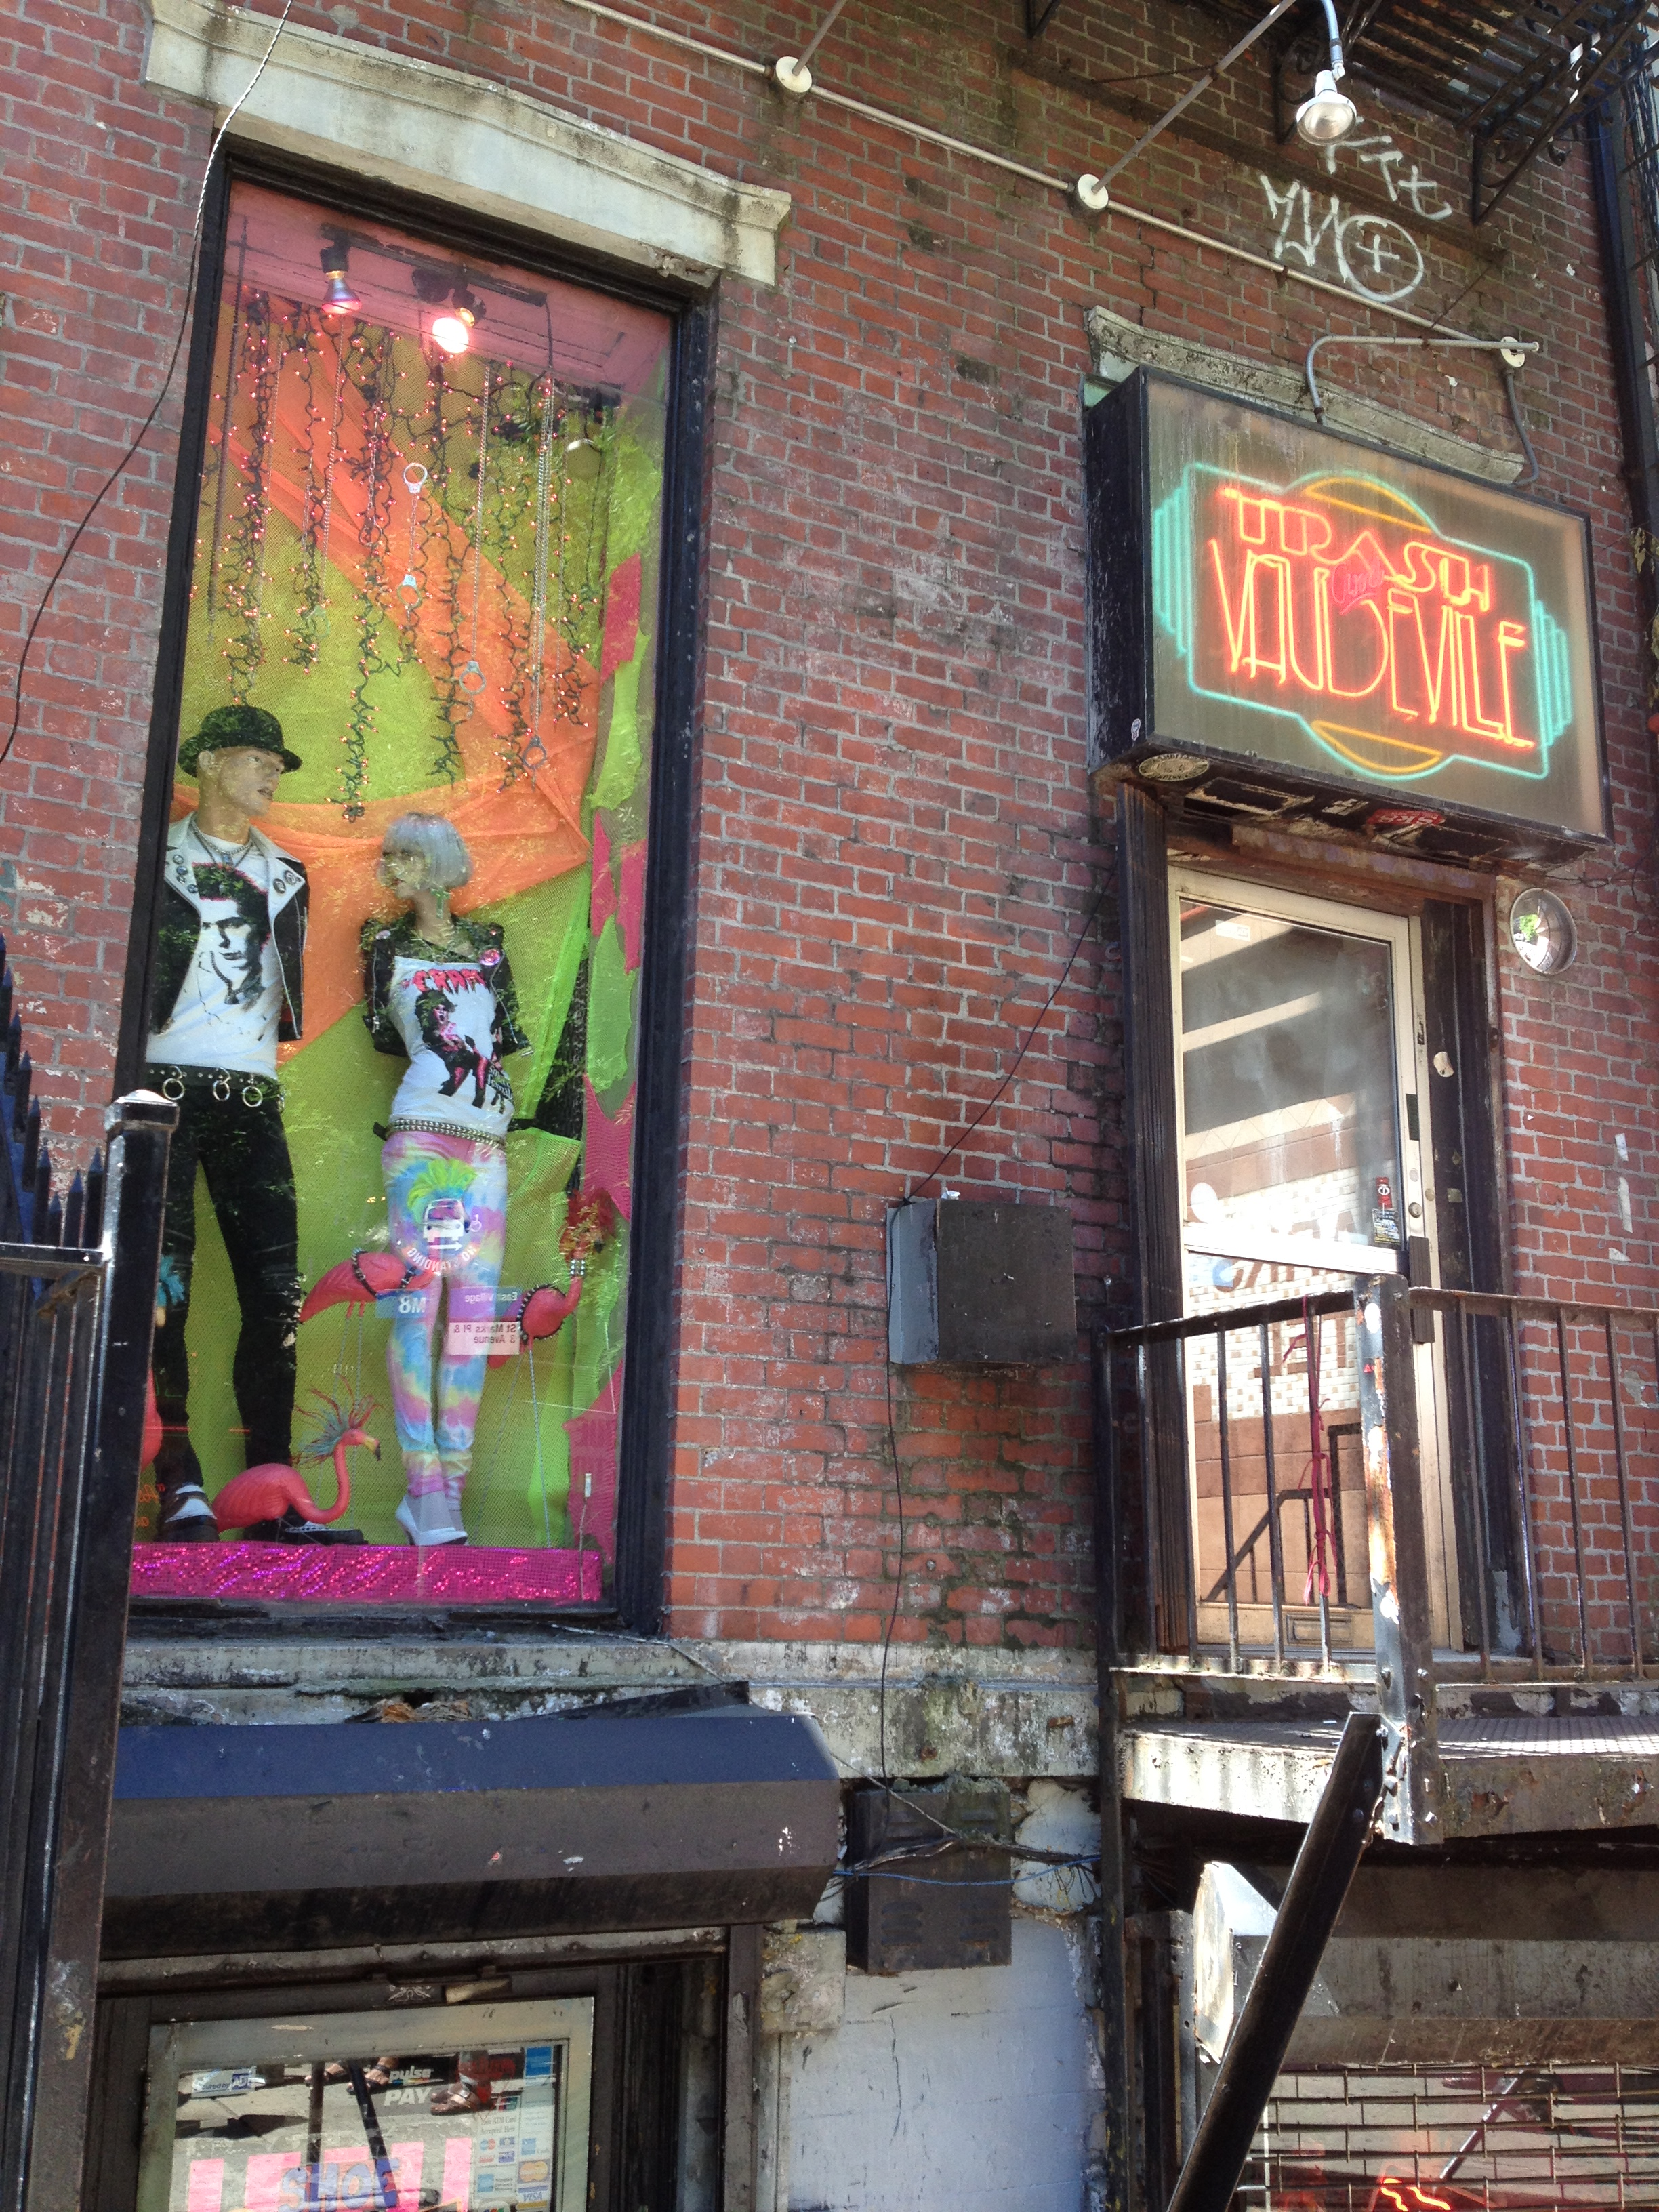 Iggy Pop, Debbie Harry, the New York Dolls and many more shopped here